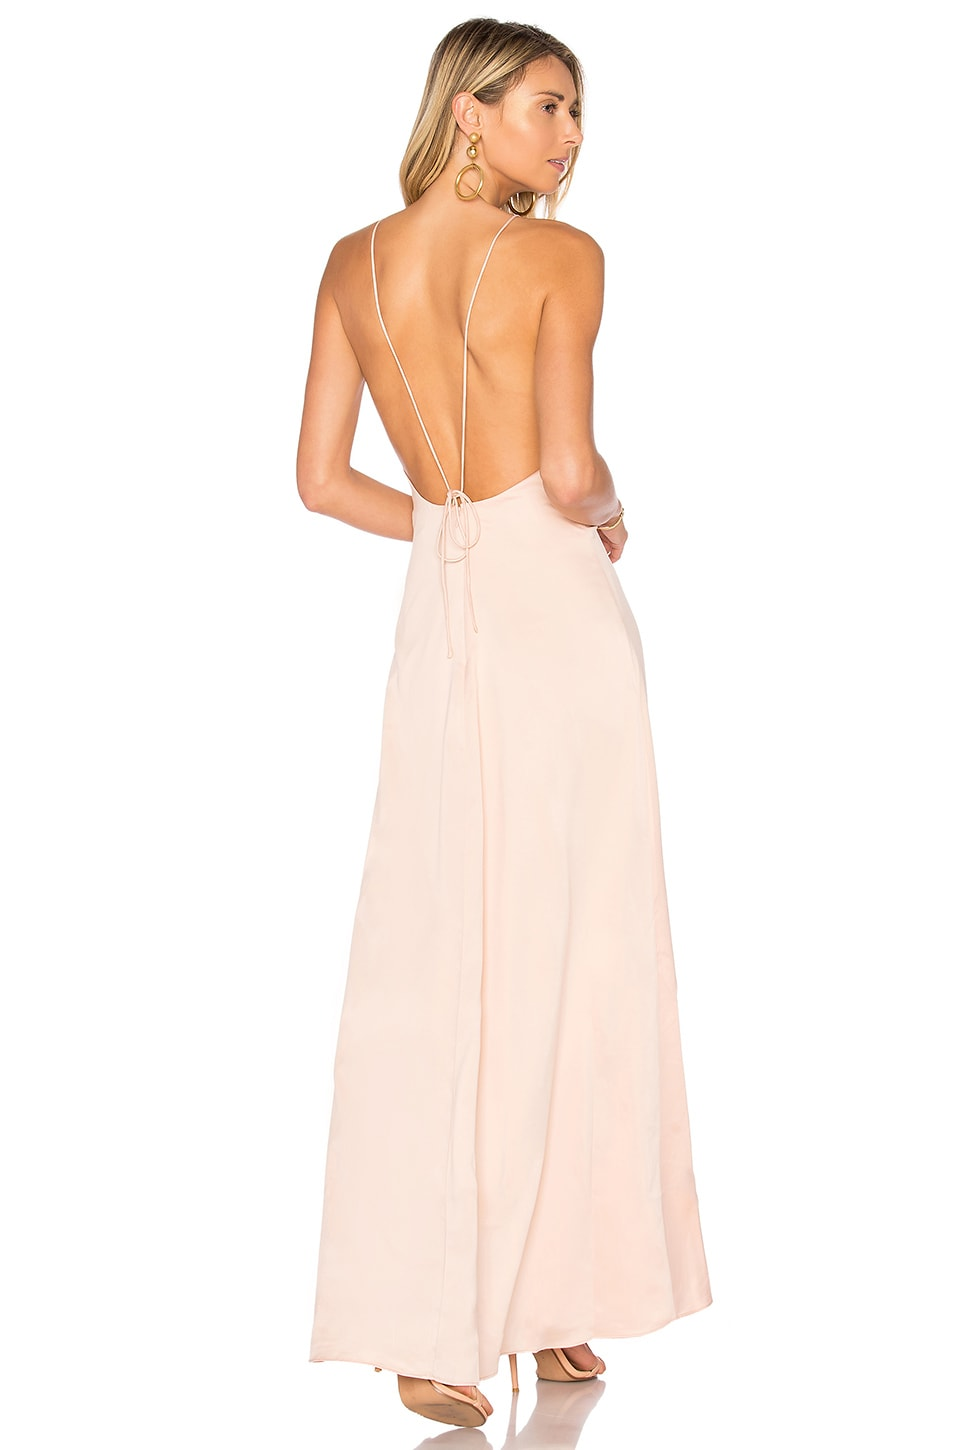 Privacy Please Elm Dress in Nude